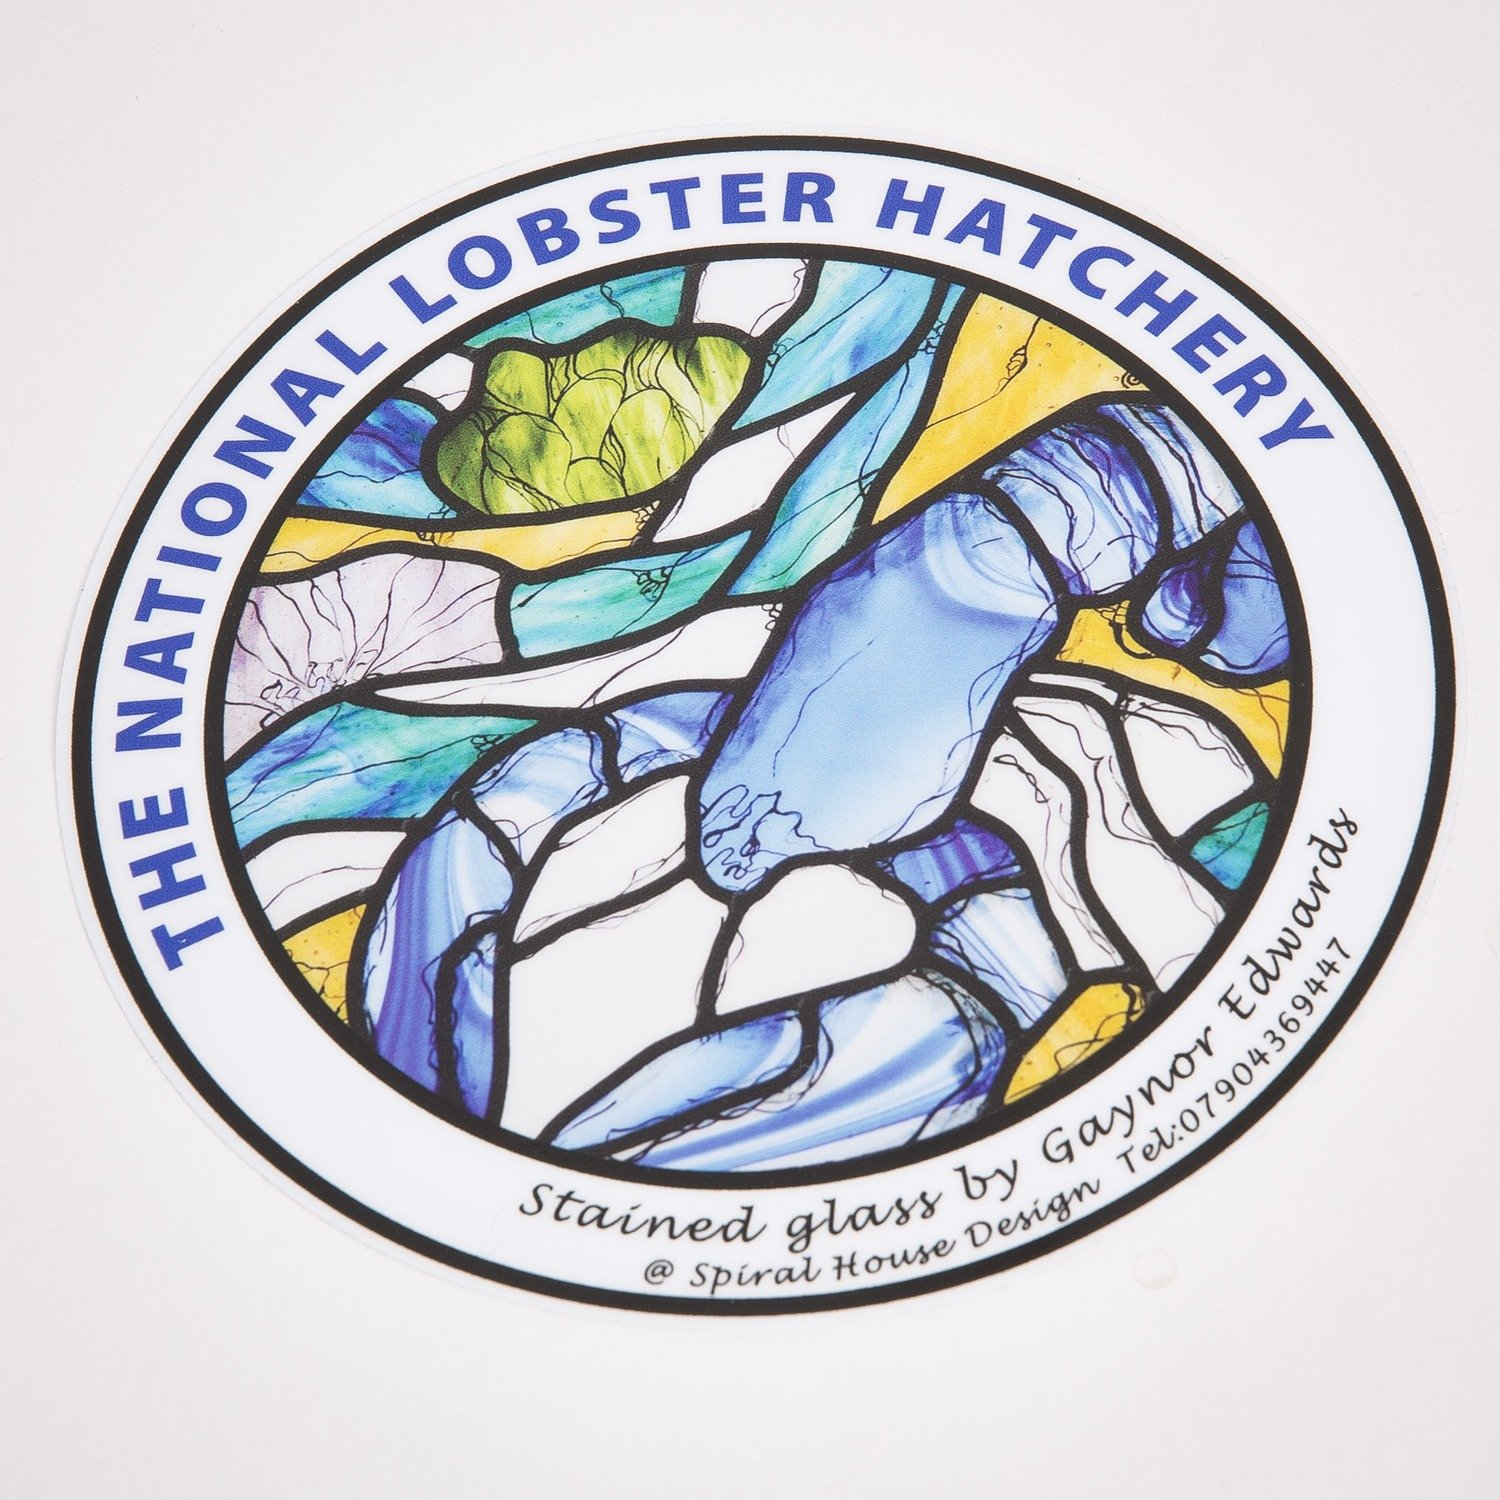 Padstow Lobster Car Sticker - Stained Glass Design